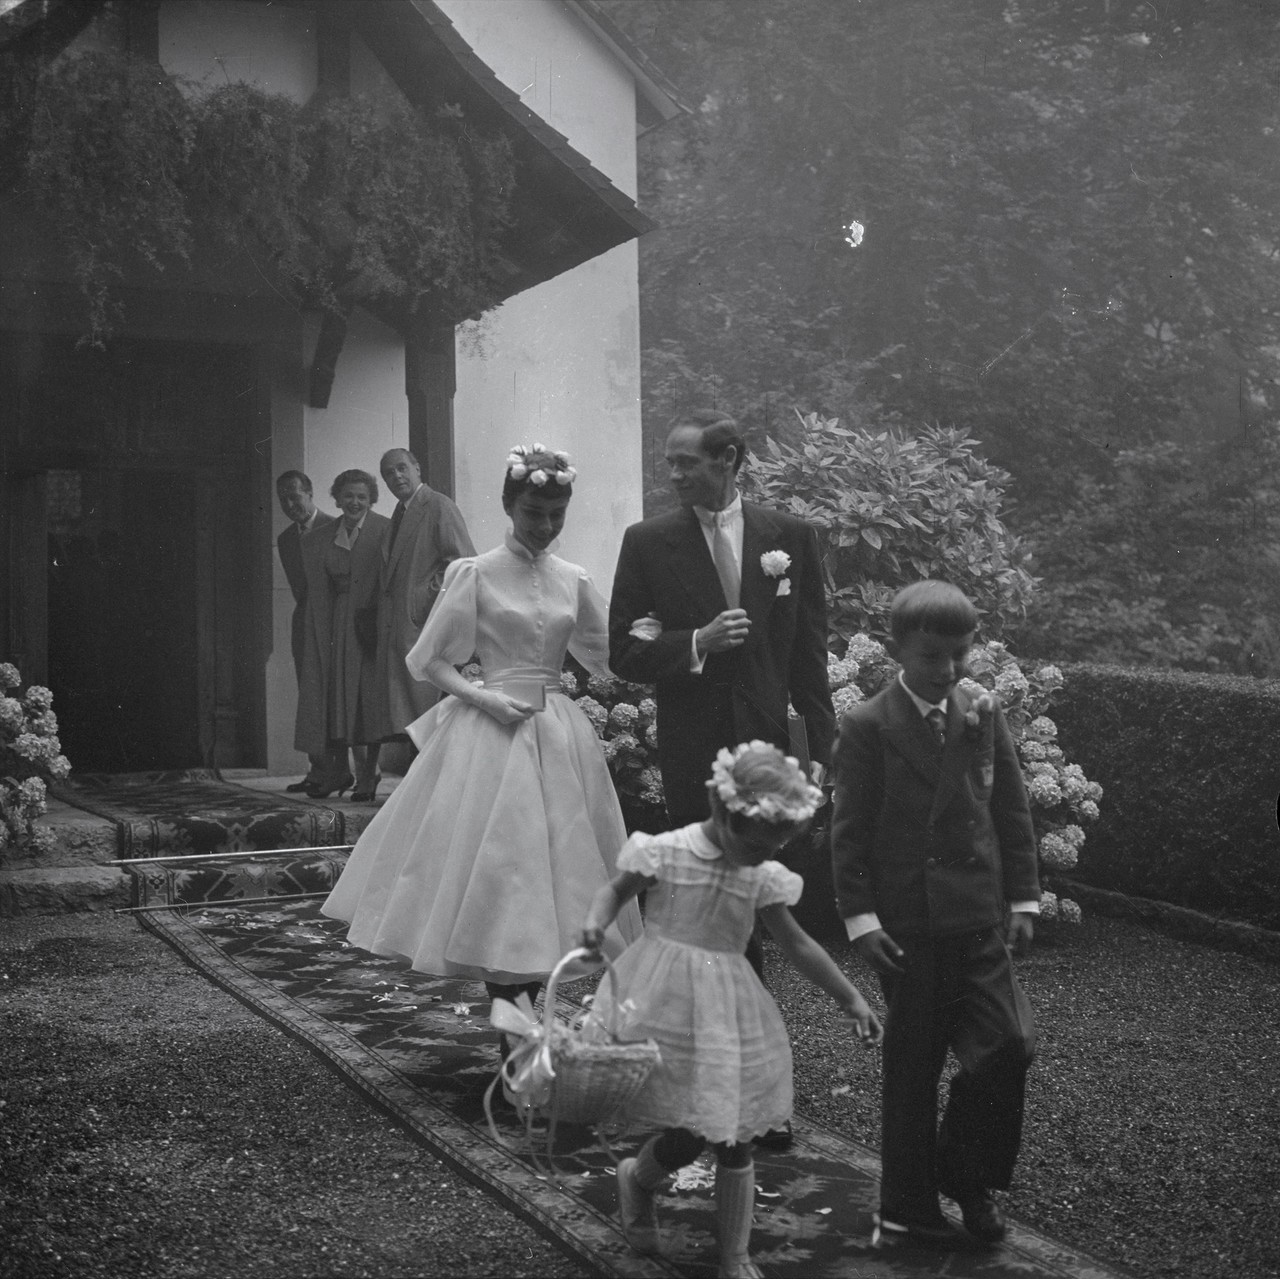 Rare Photographs Of Audrey Hepburn And Mel Ferrer On Their